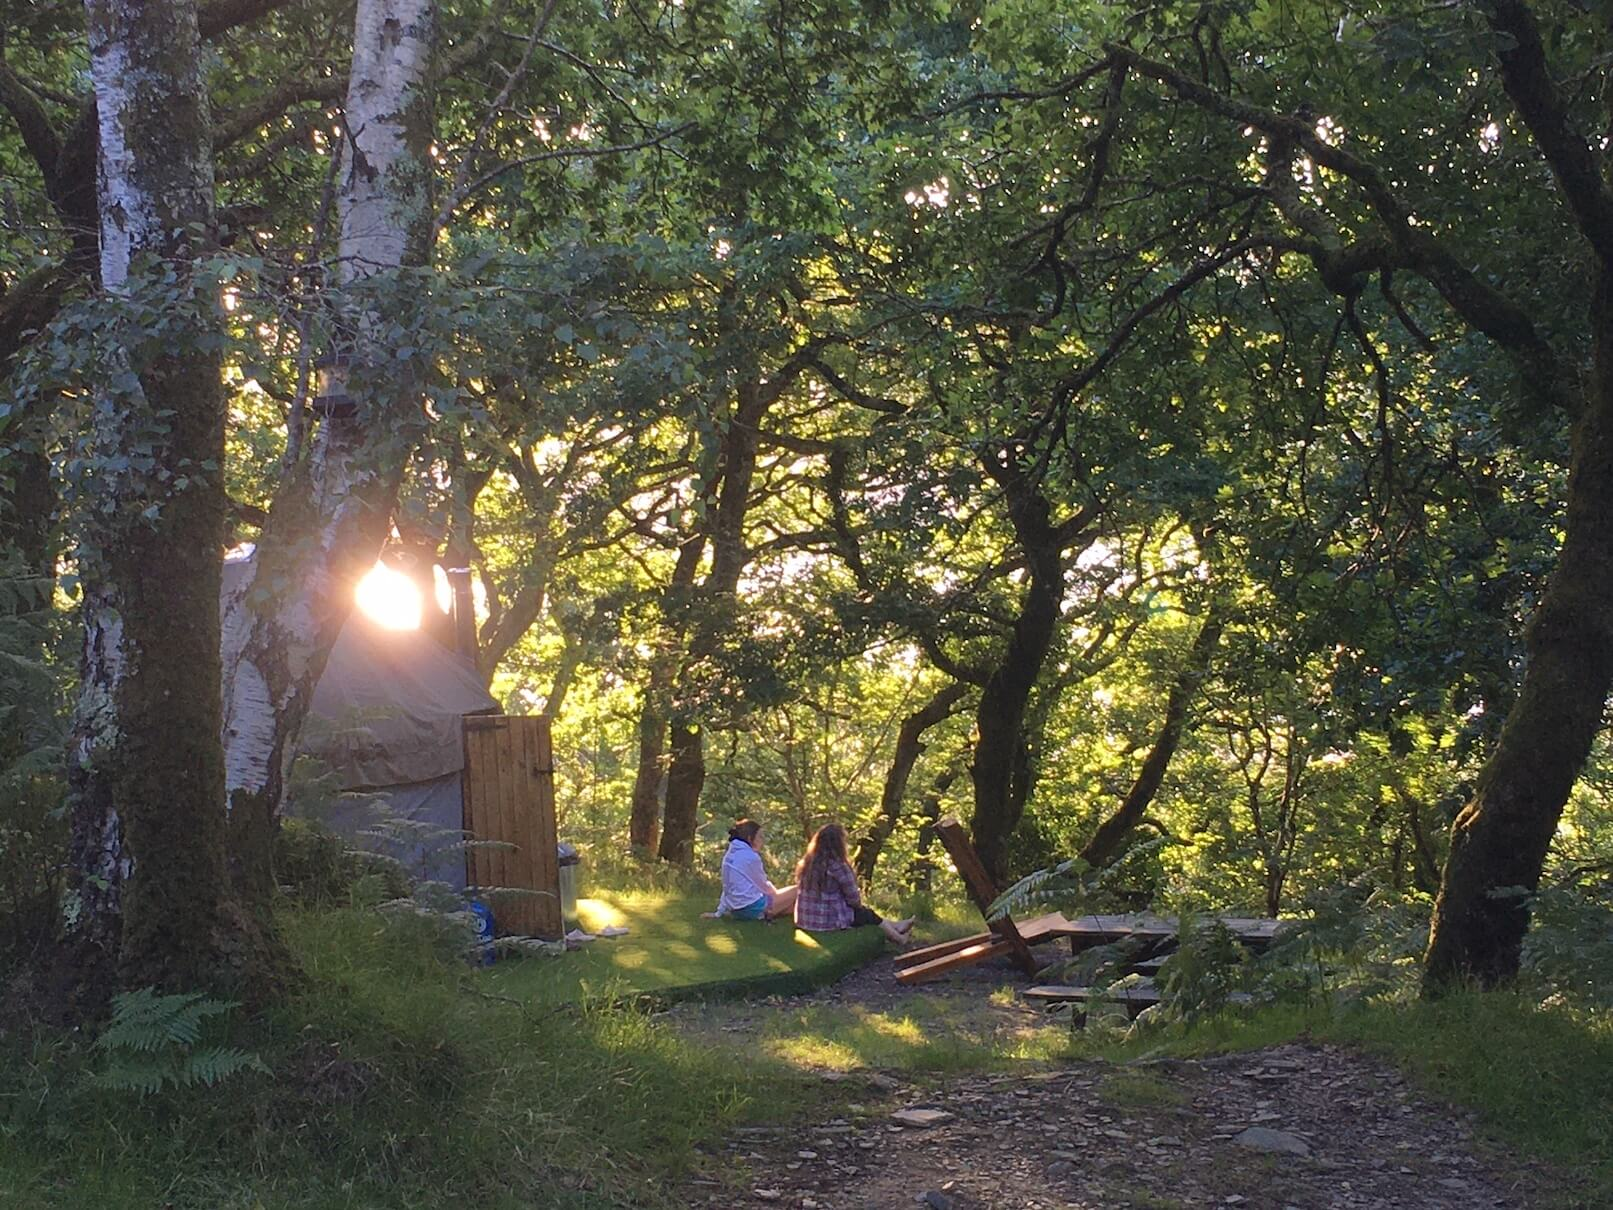 Summer evening at the yurt